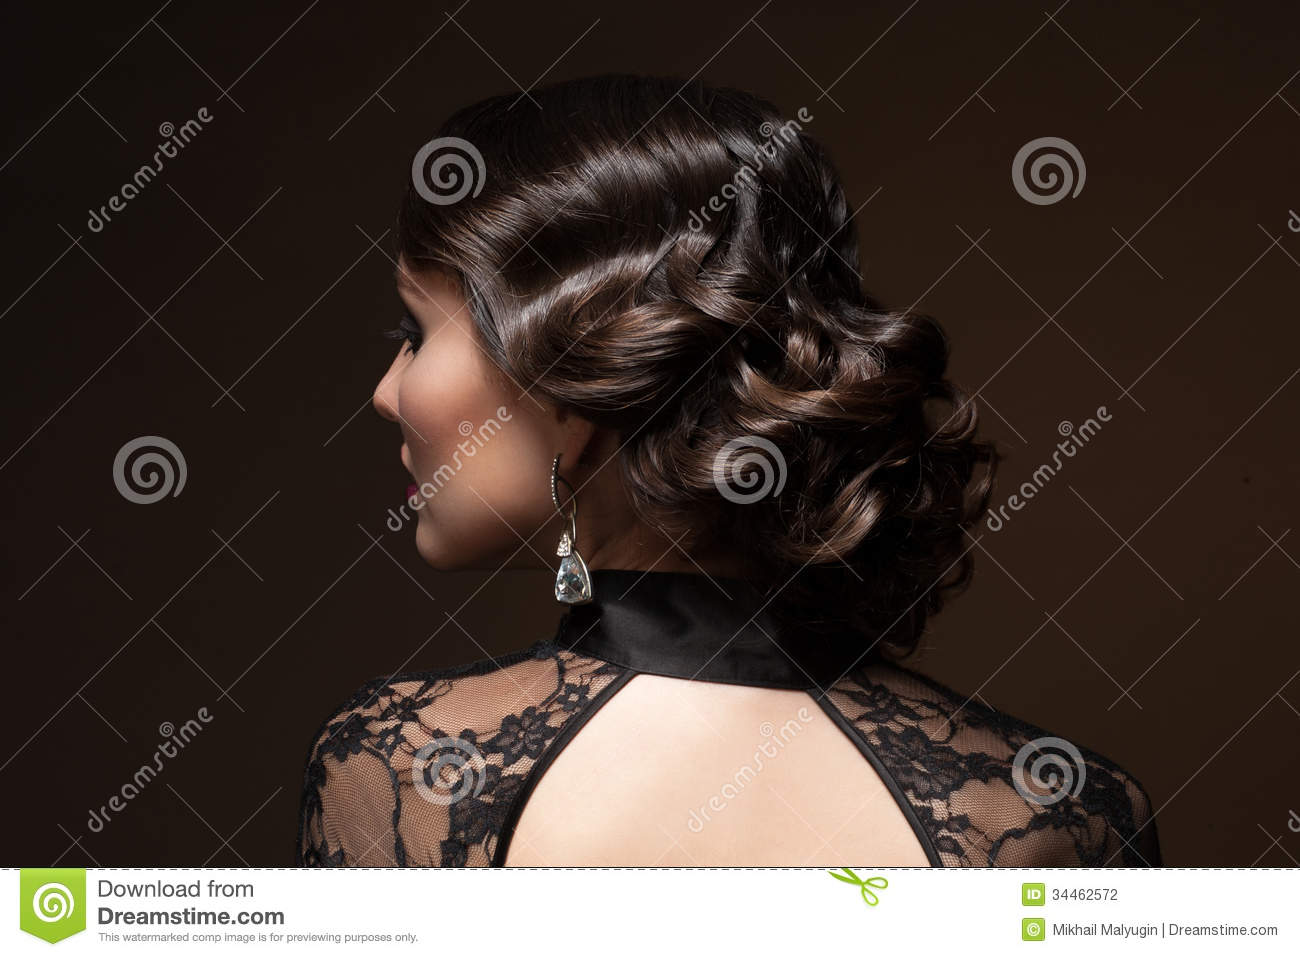 Woman with hairstyle